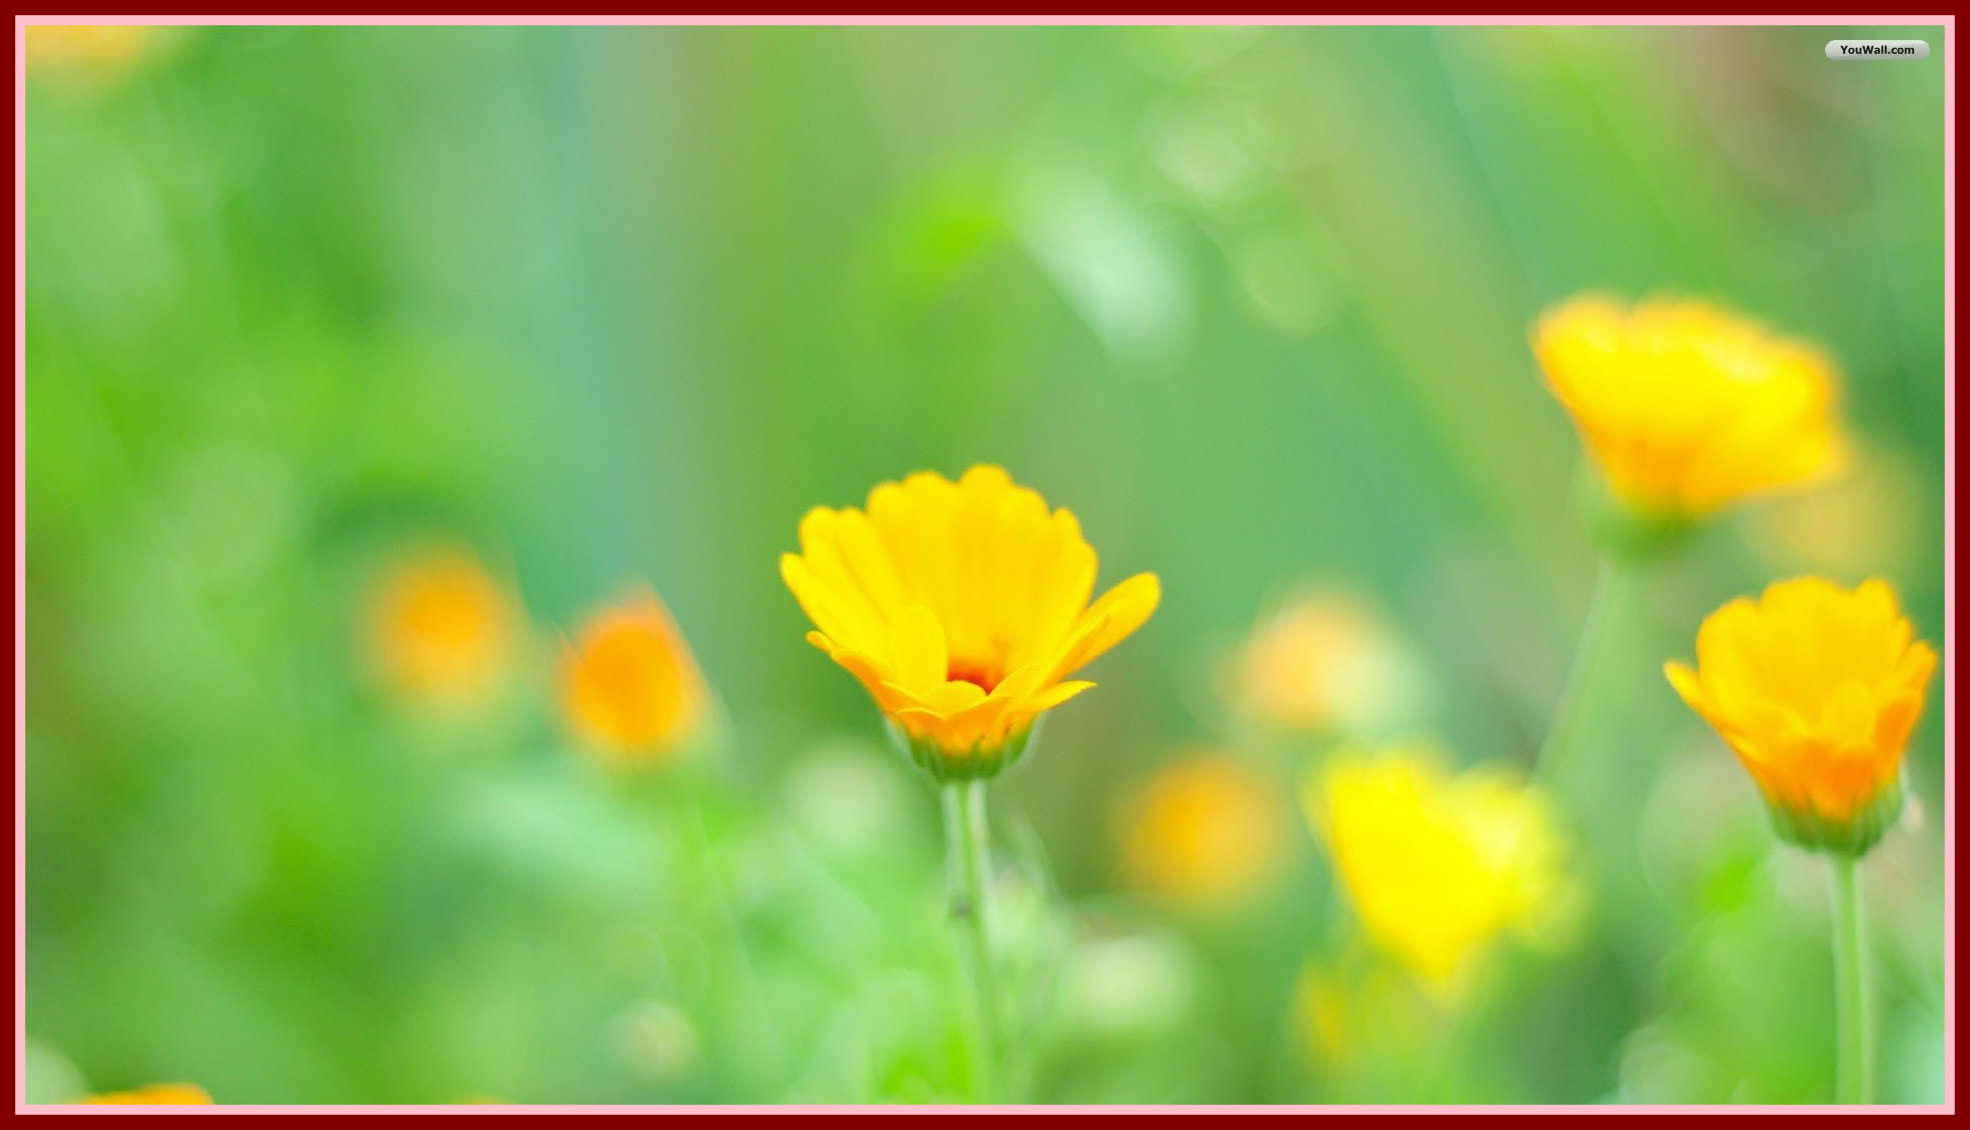 64 Yellow Flower Wallpapers on WallpaperPlay 1970x1130